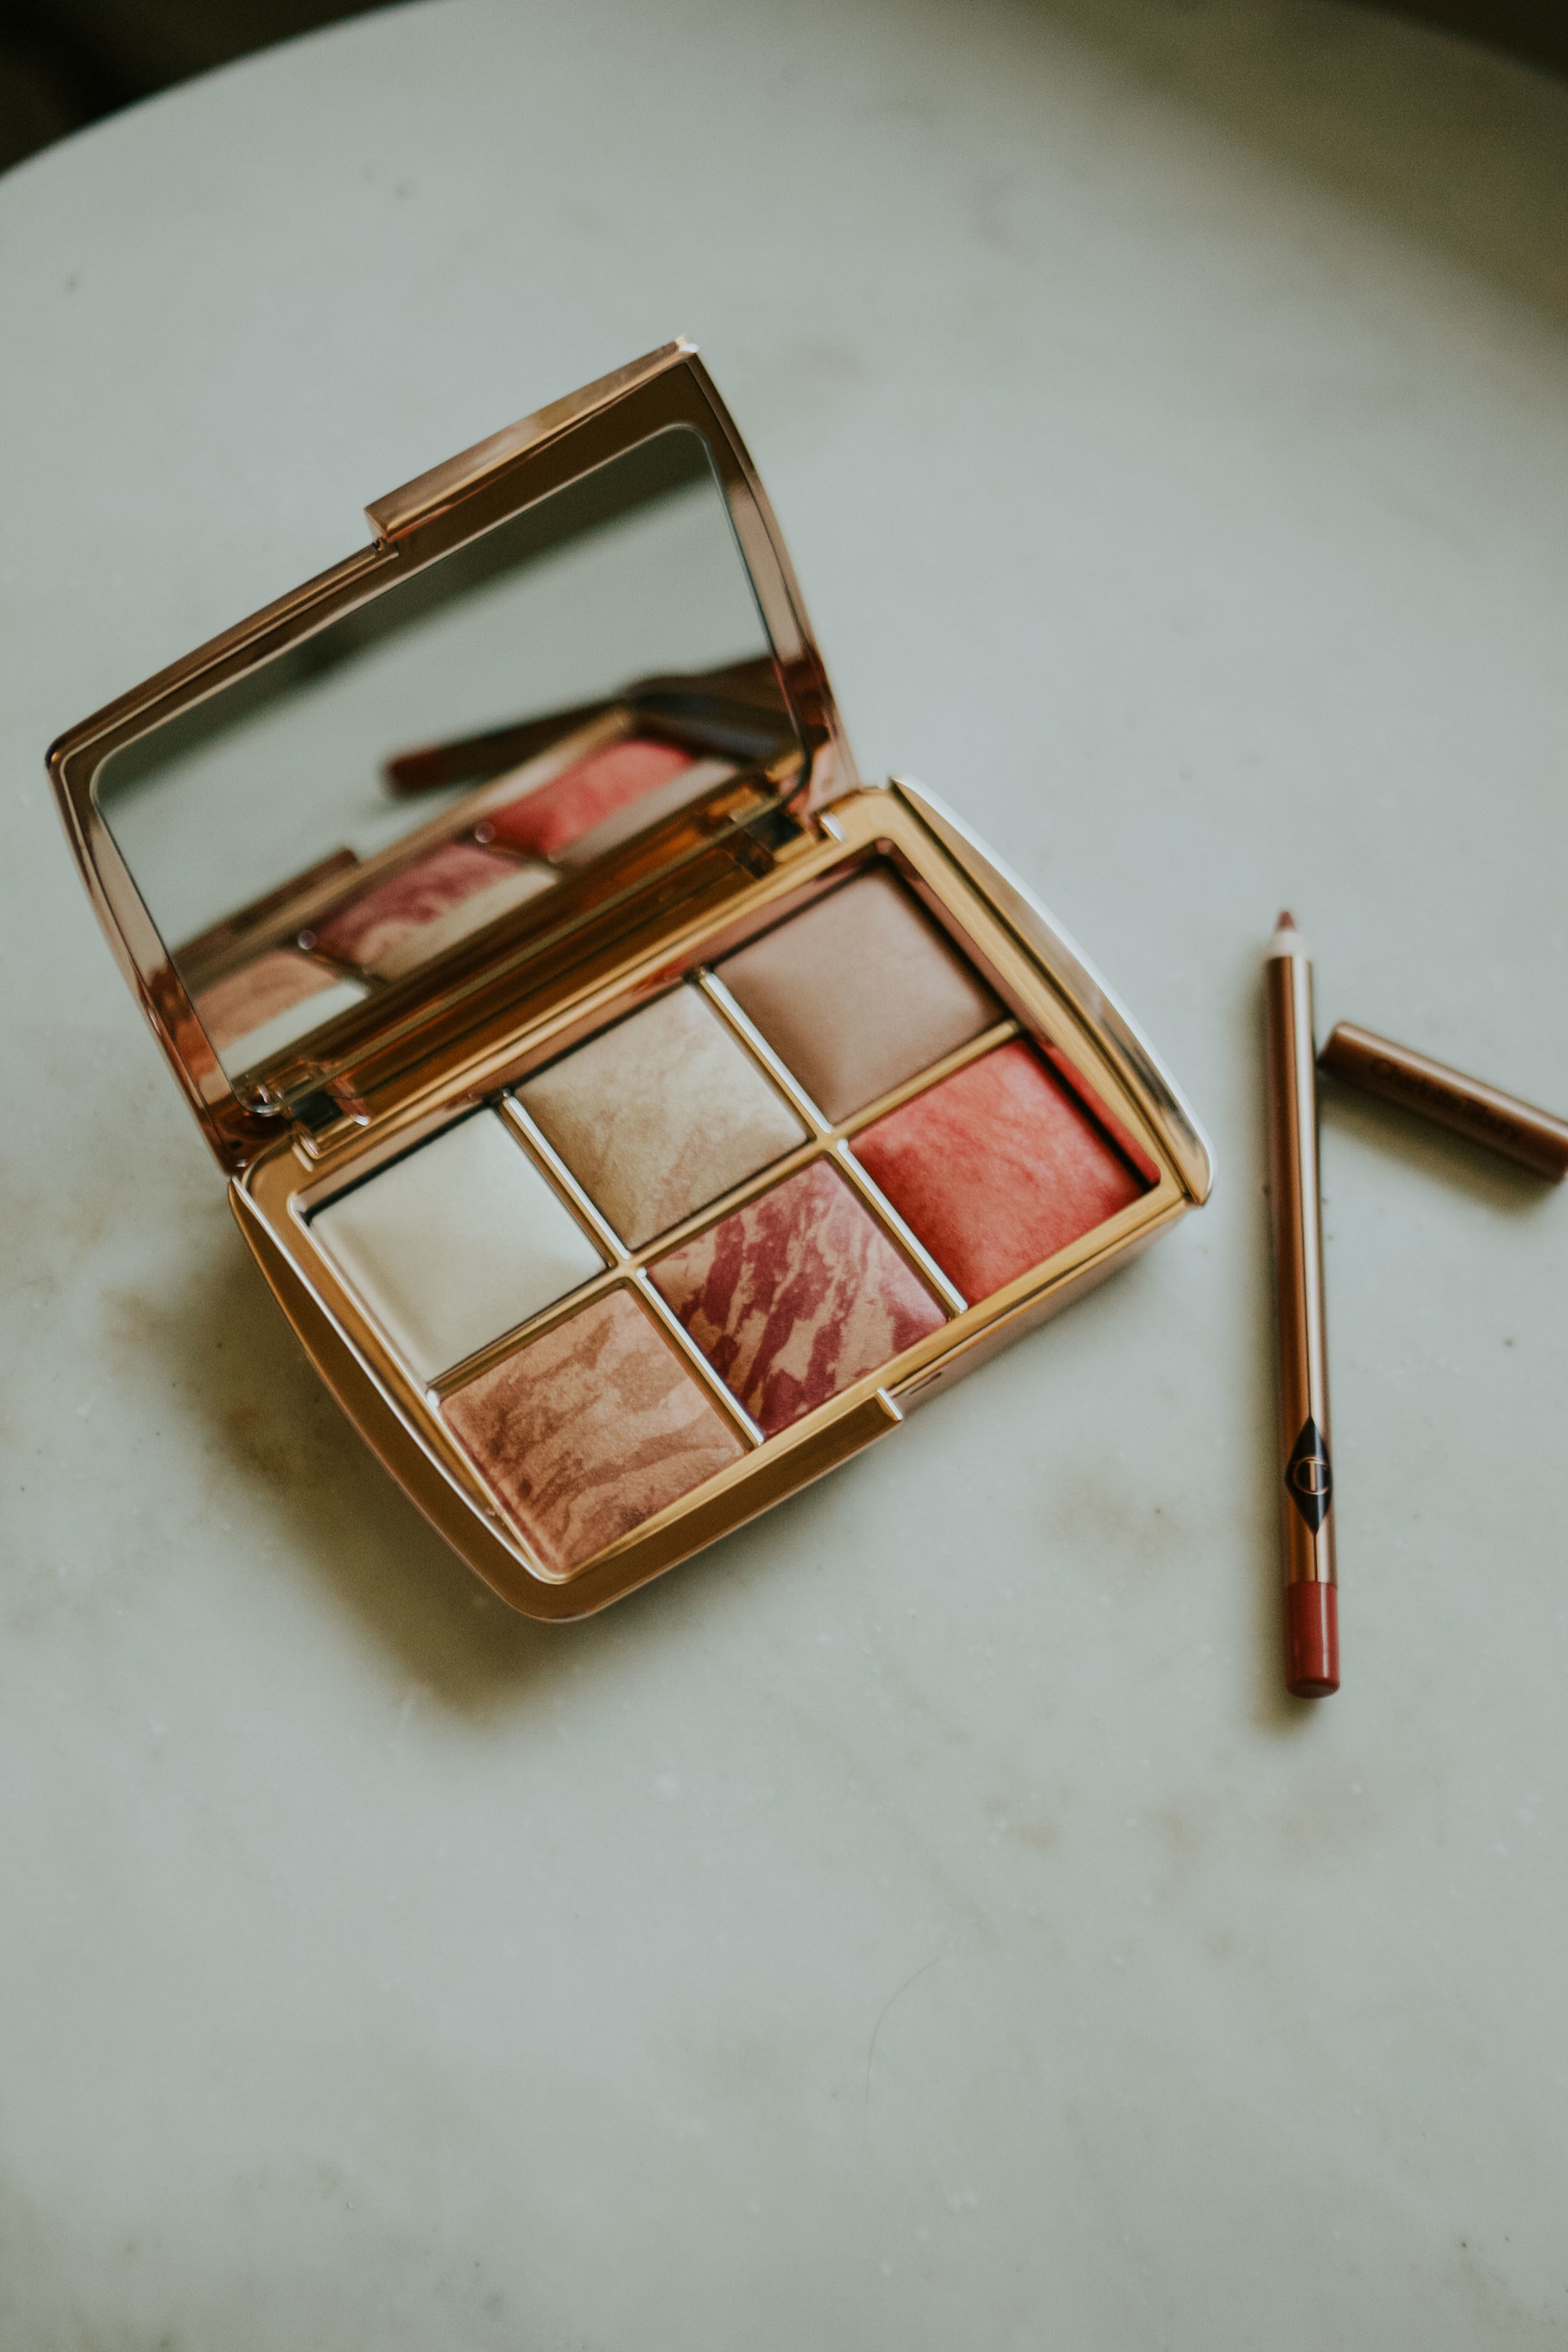 I absolutely love this makeup palette by Hourglass. I'm also currently loving this lip pencil by Charlotte Tilbur,especially in the Pillowtalk color.